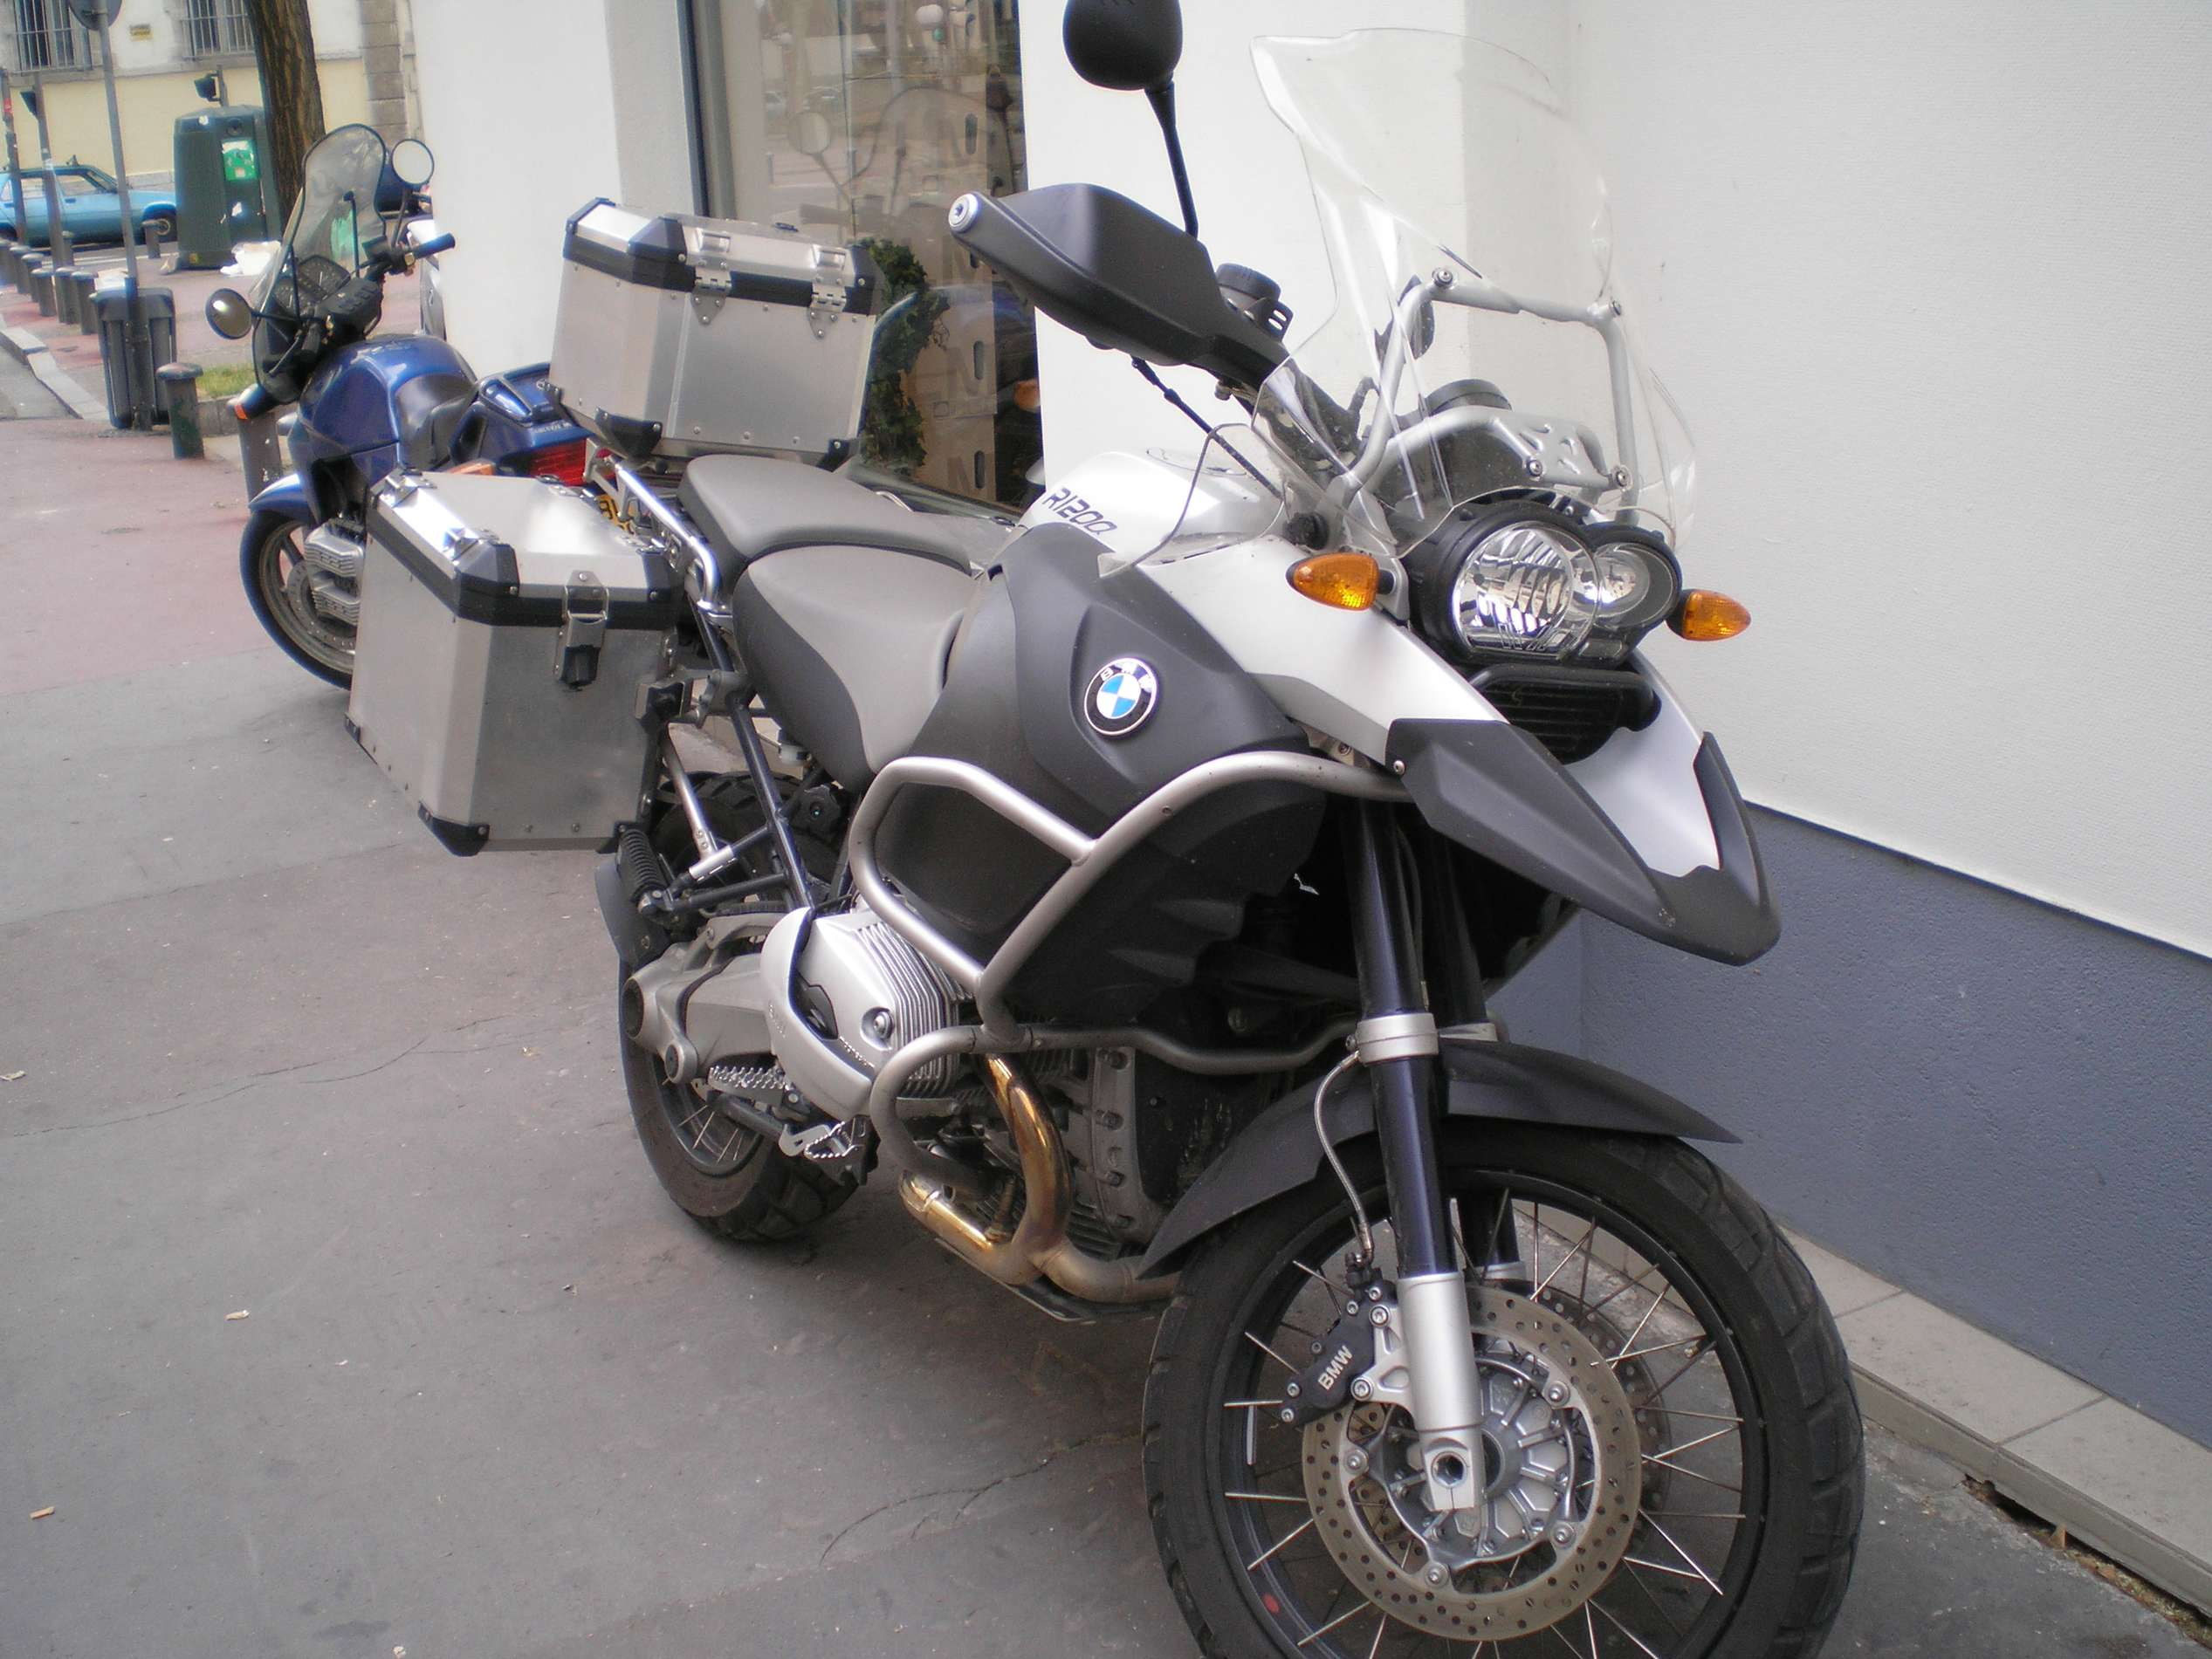 BMW R 1200 GS Adventure #7015408